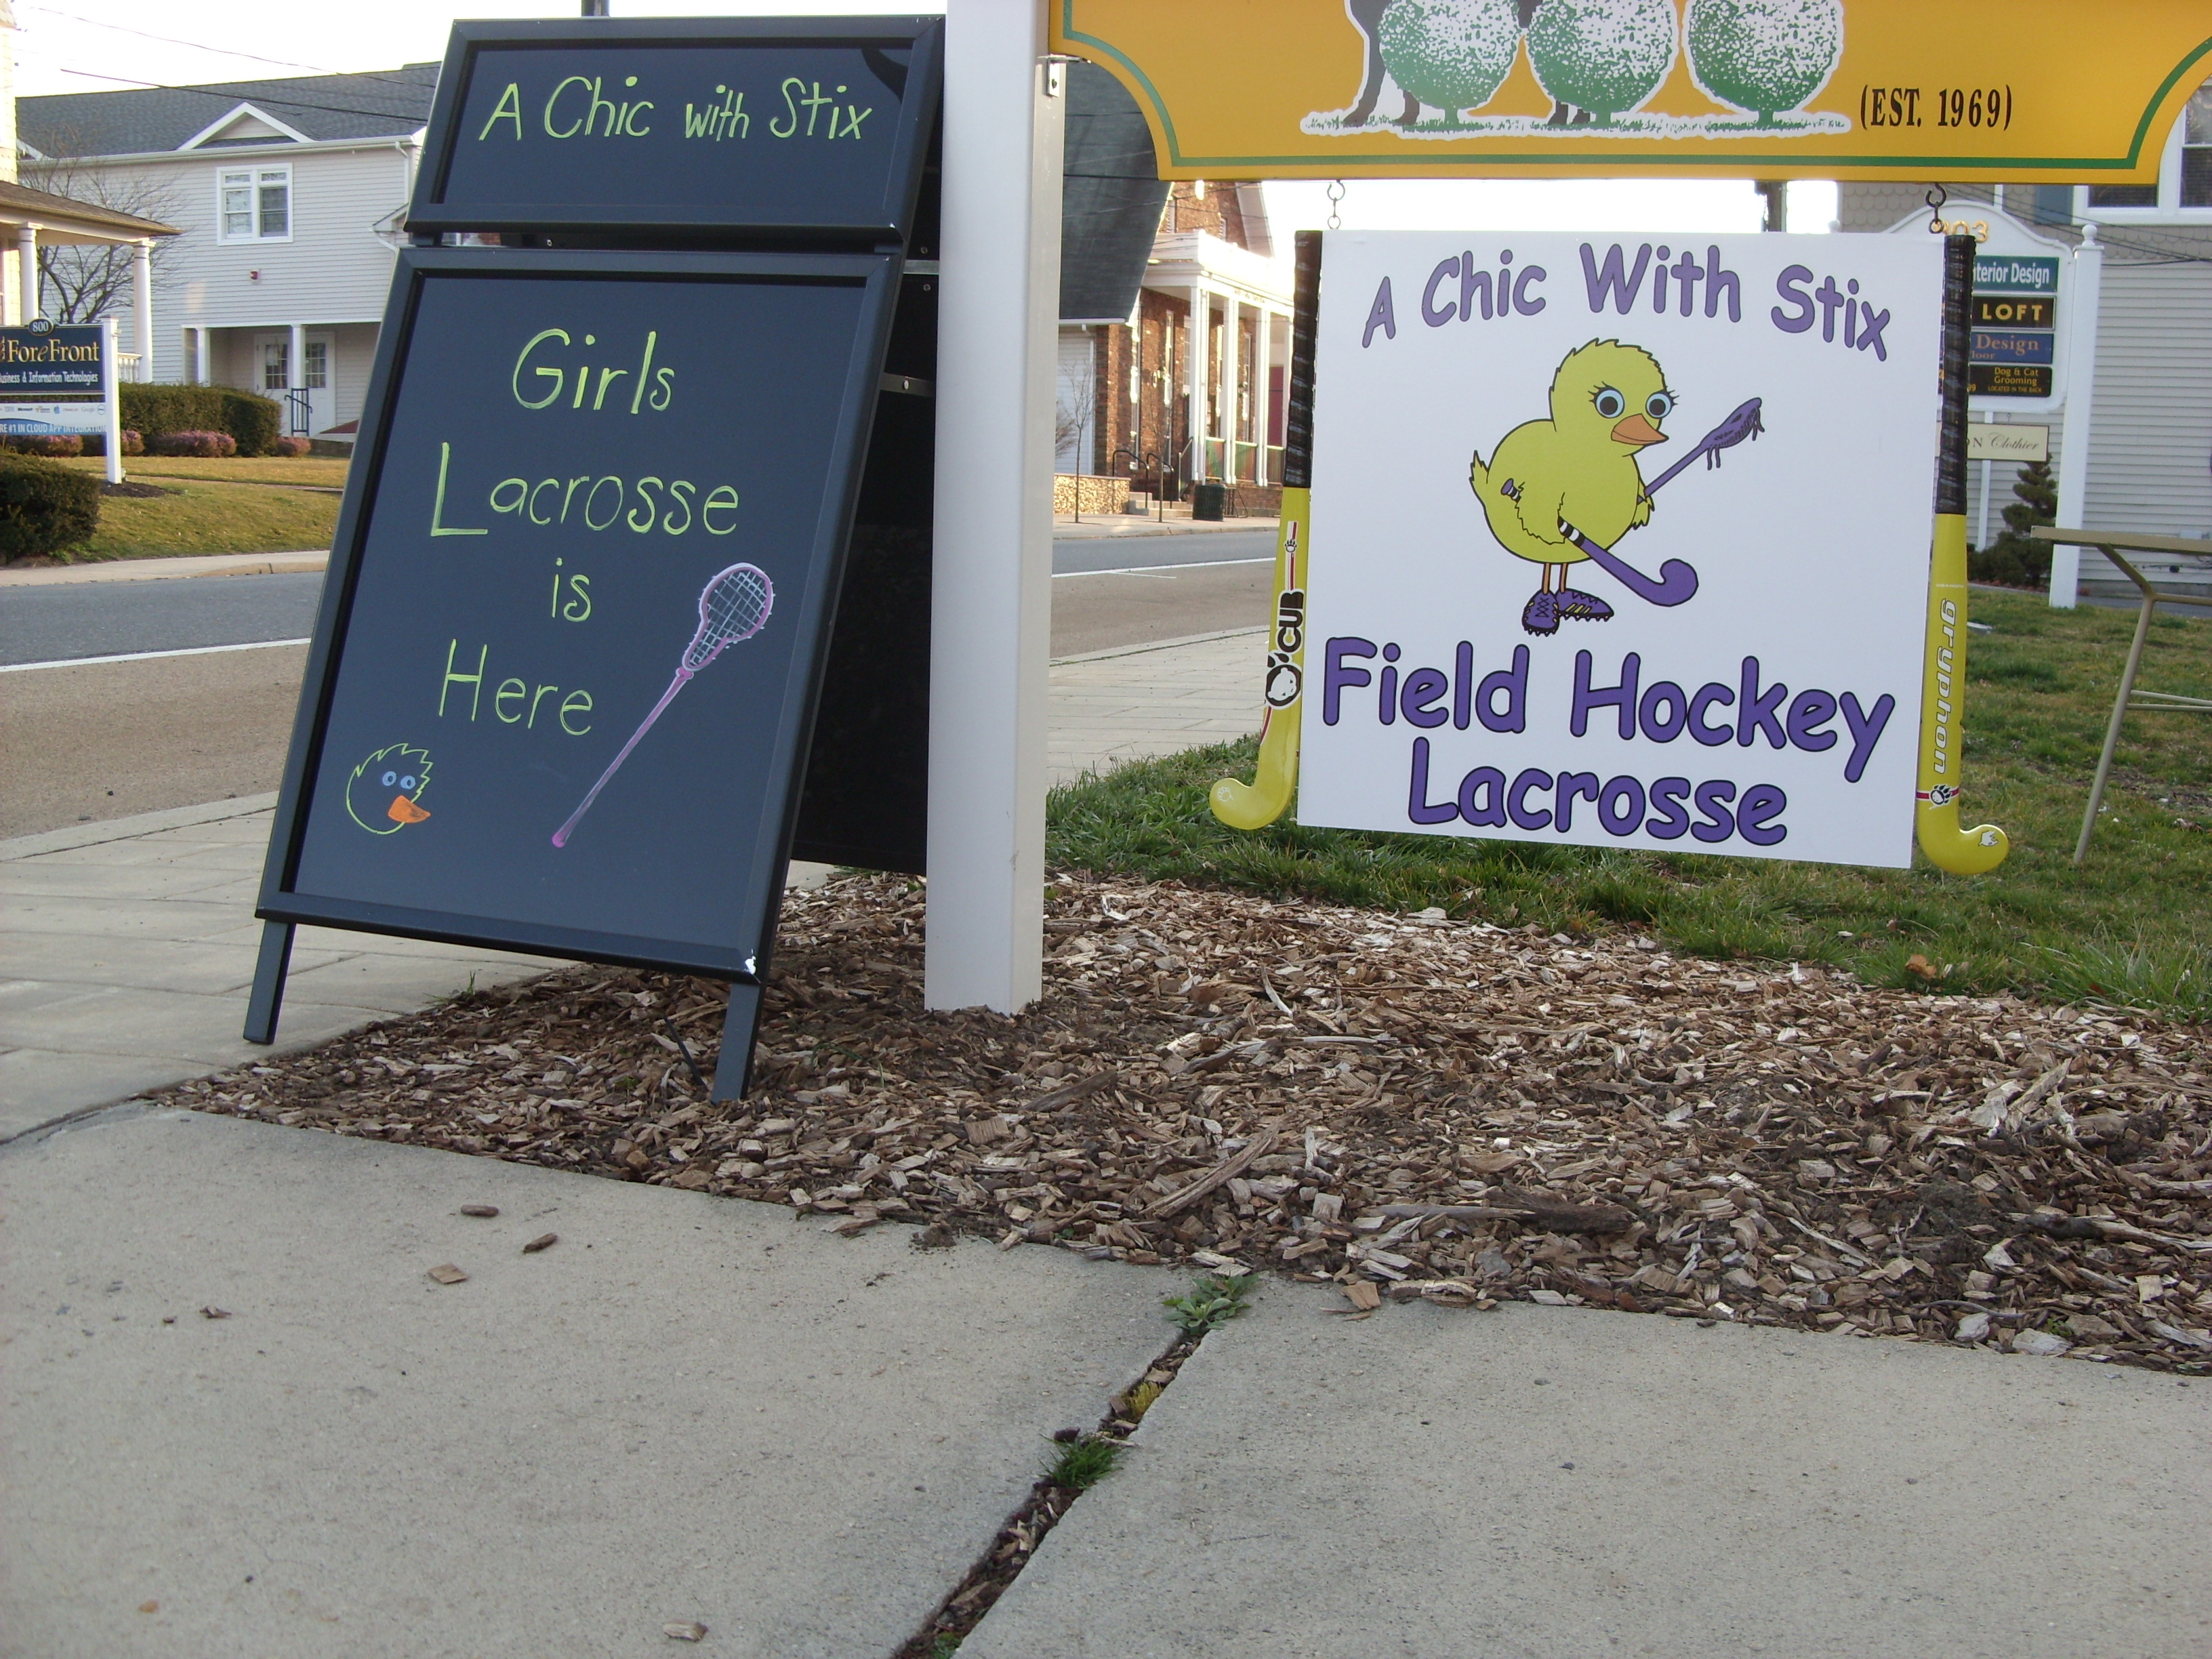 Field Hockey Lacrosse Store NJ